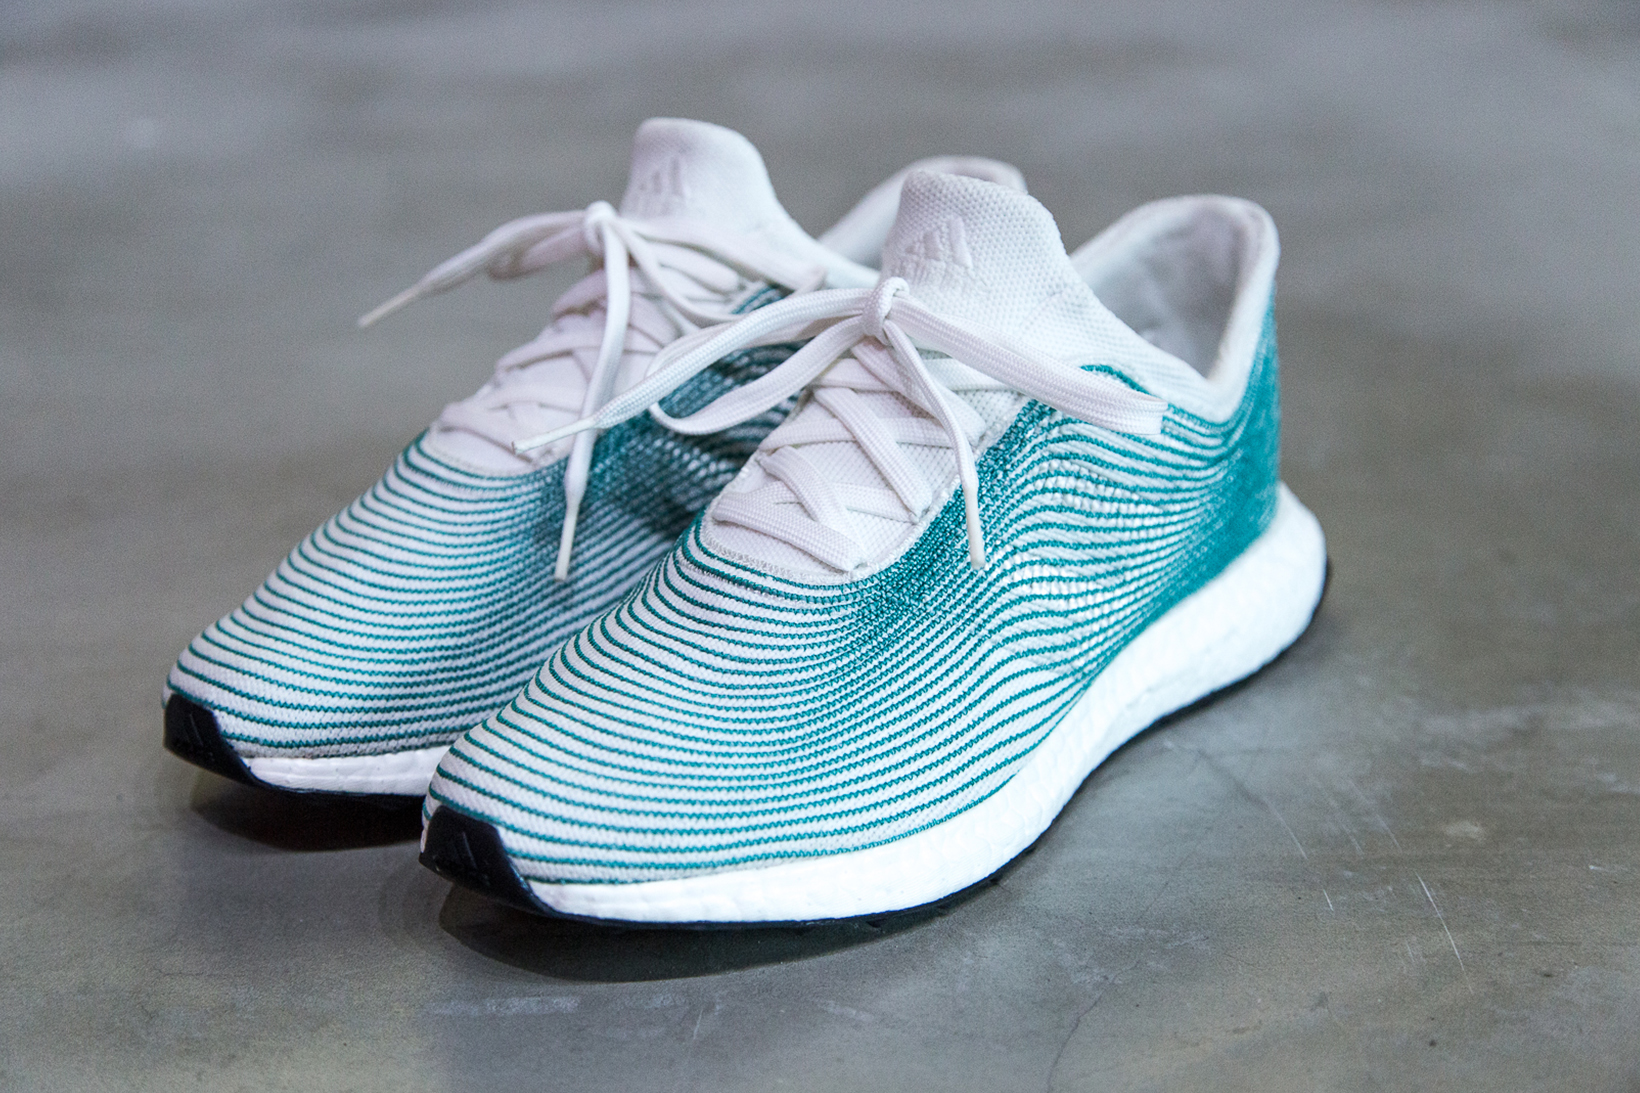 72547b58577a7 Womens Adidas Parley Shoes Womens Adidas Parley Shoes Men ...